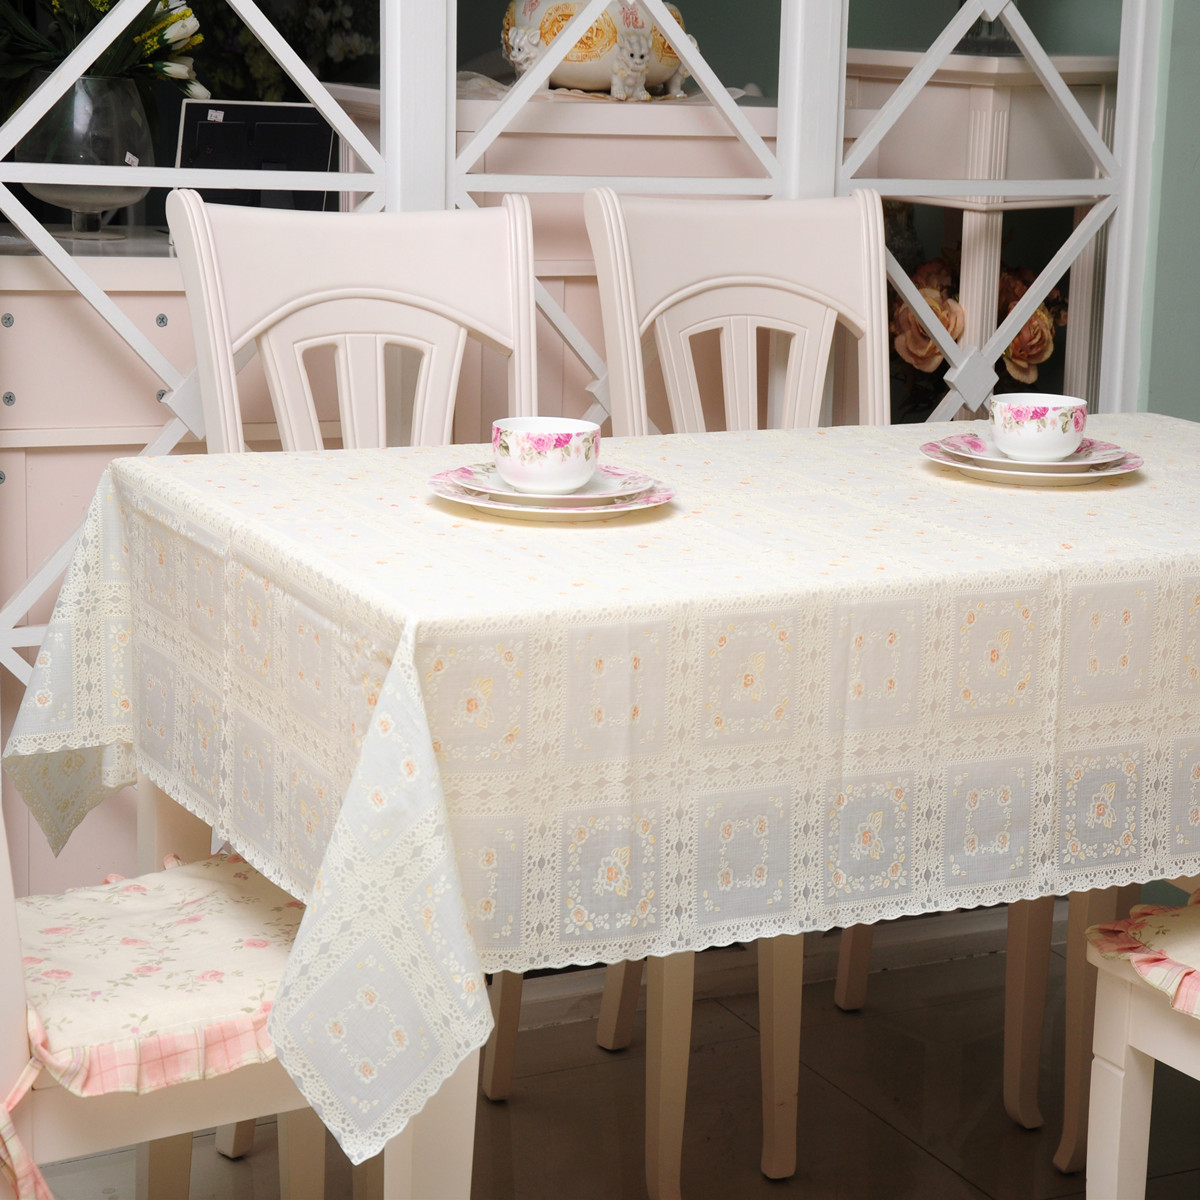 Disposable Plastic Pvc Tablecloth Table Towel Past Jk8006 Lace Tablecloths Cutting Stamping Proof Waterproof In From Home Garden On